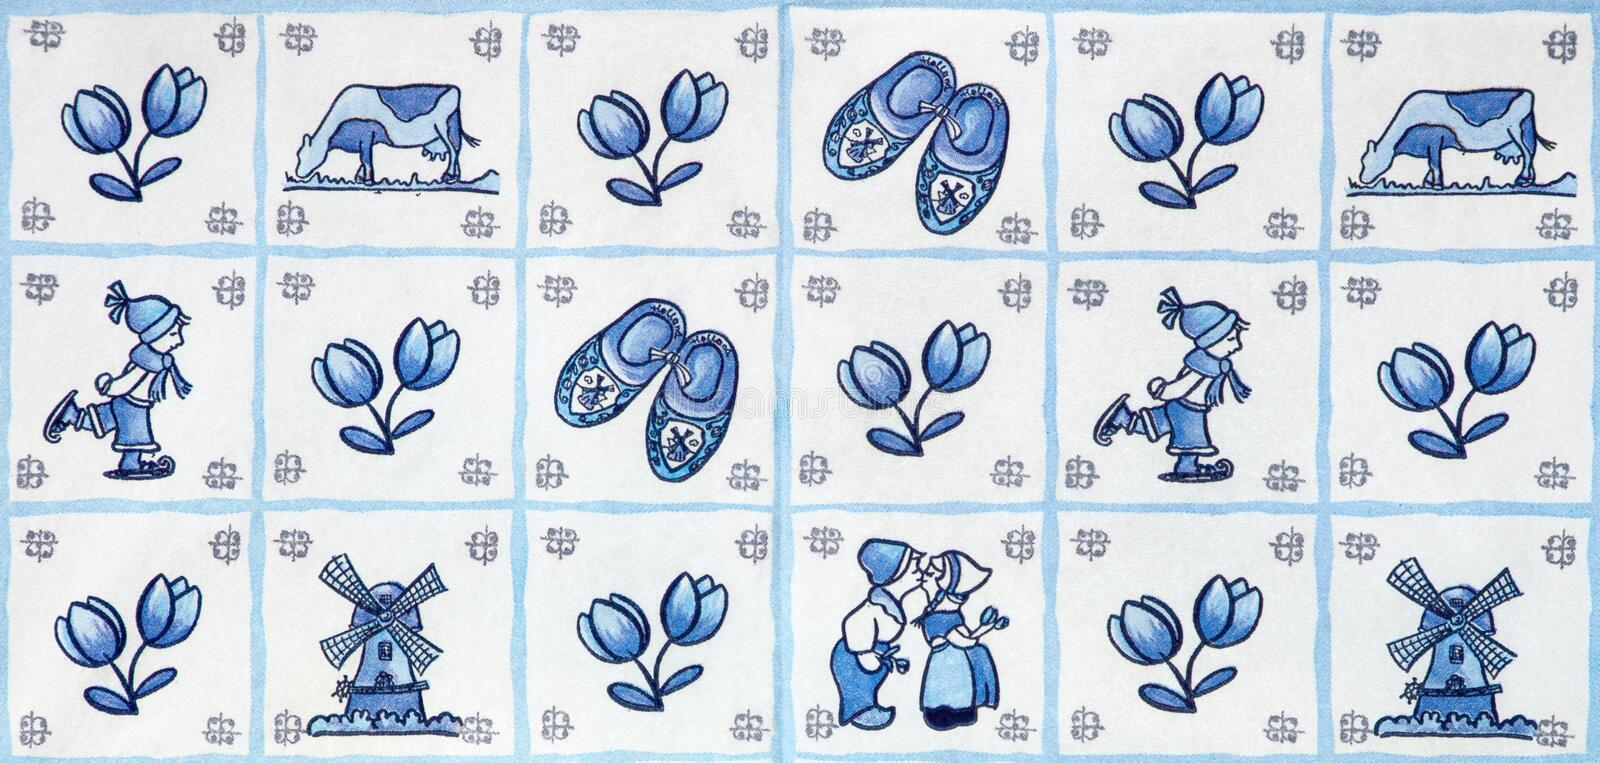 Blue Delft Landmarks of Holland. Windmills, clogs, tulips and kissing couple in a blue delft design stock photography